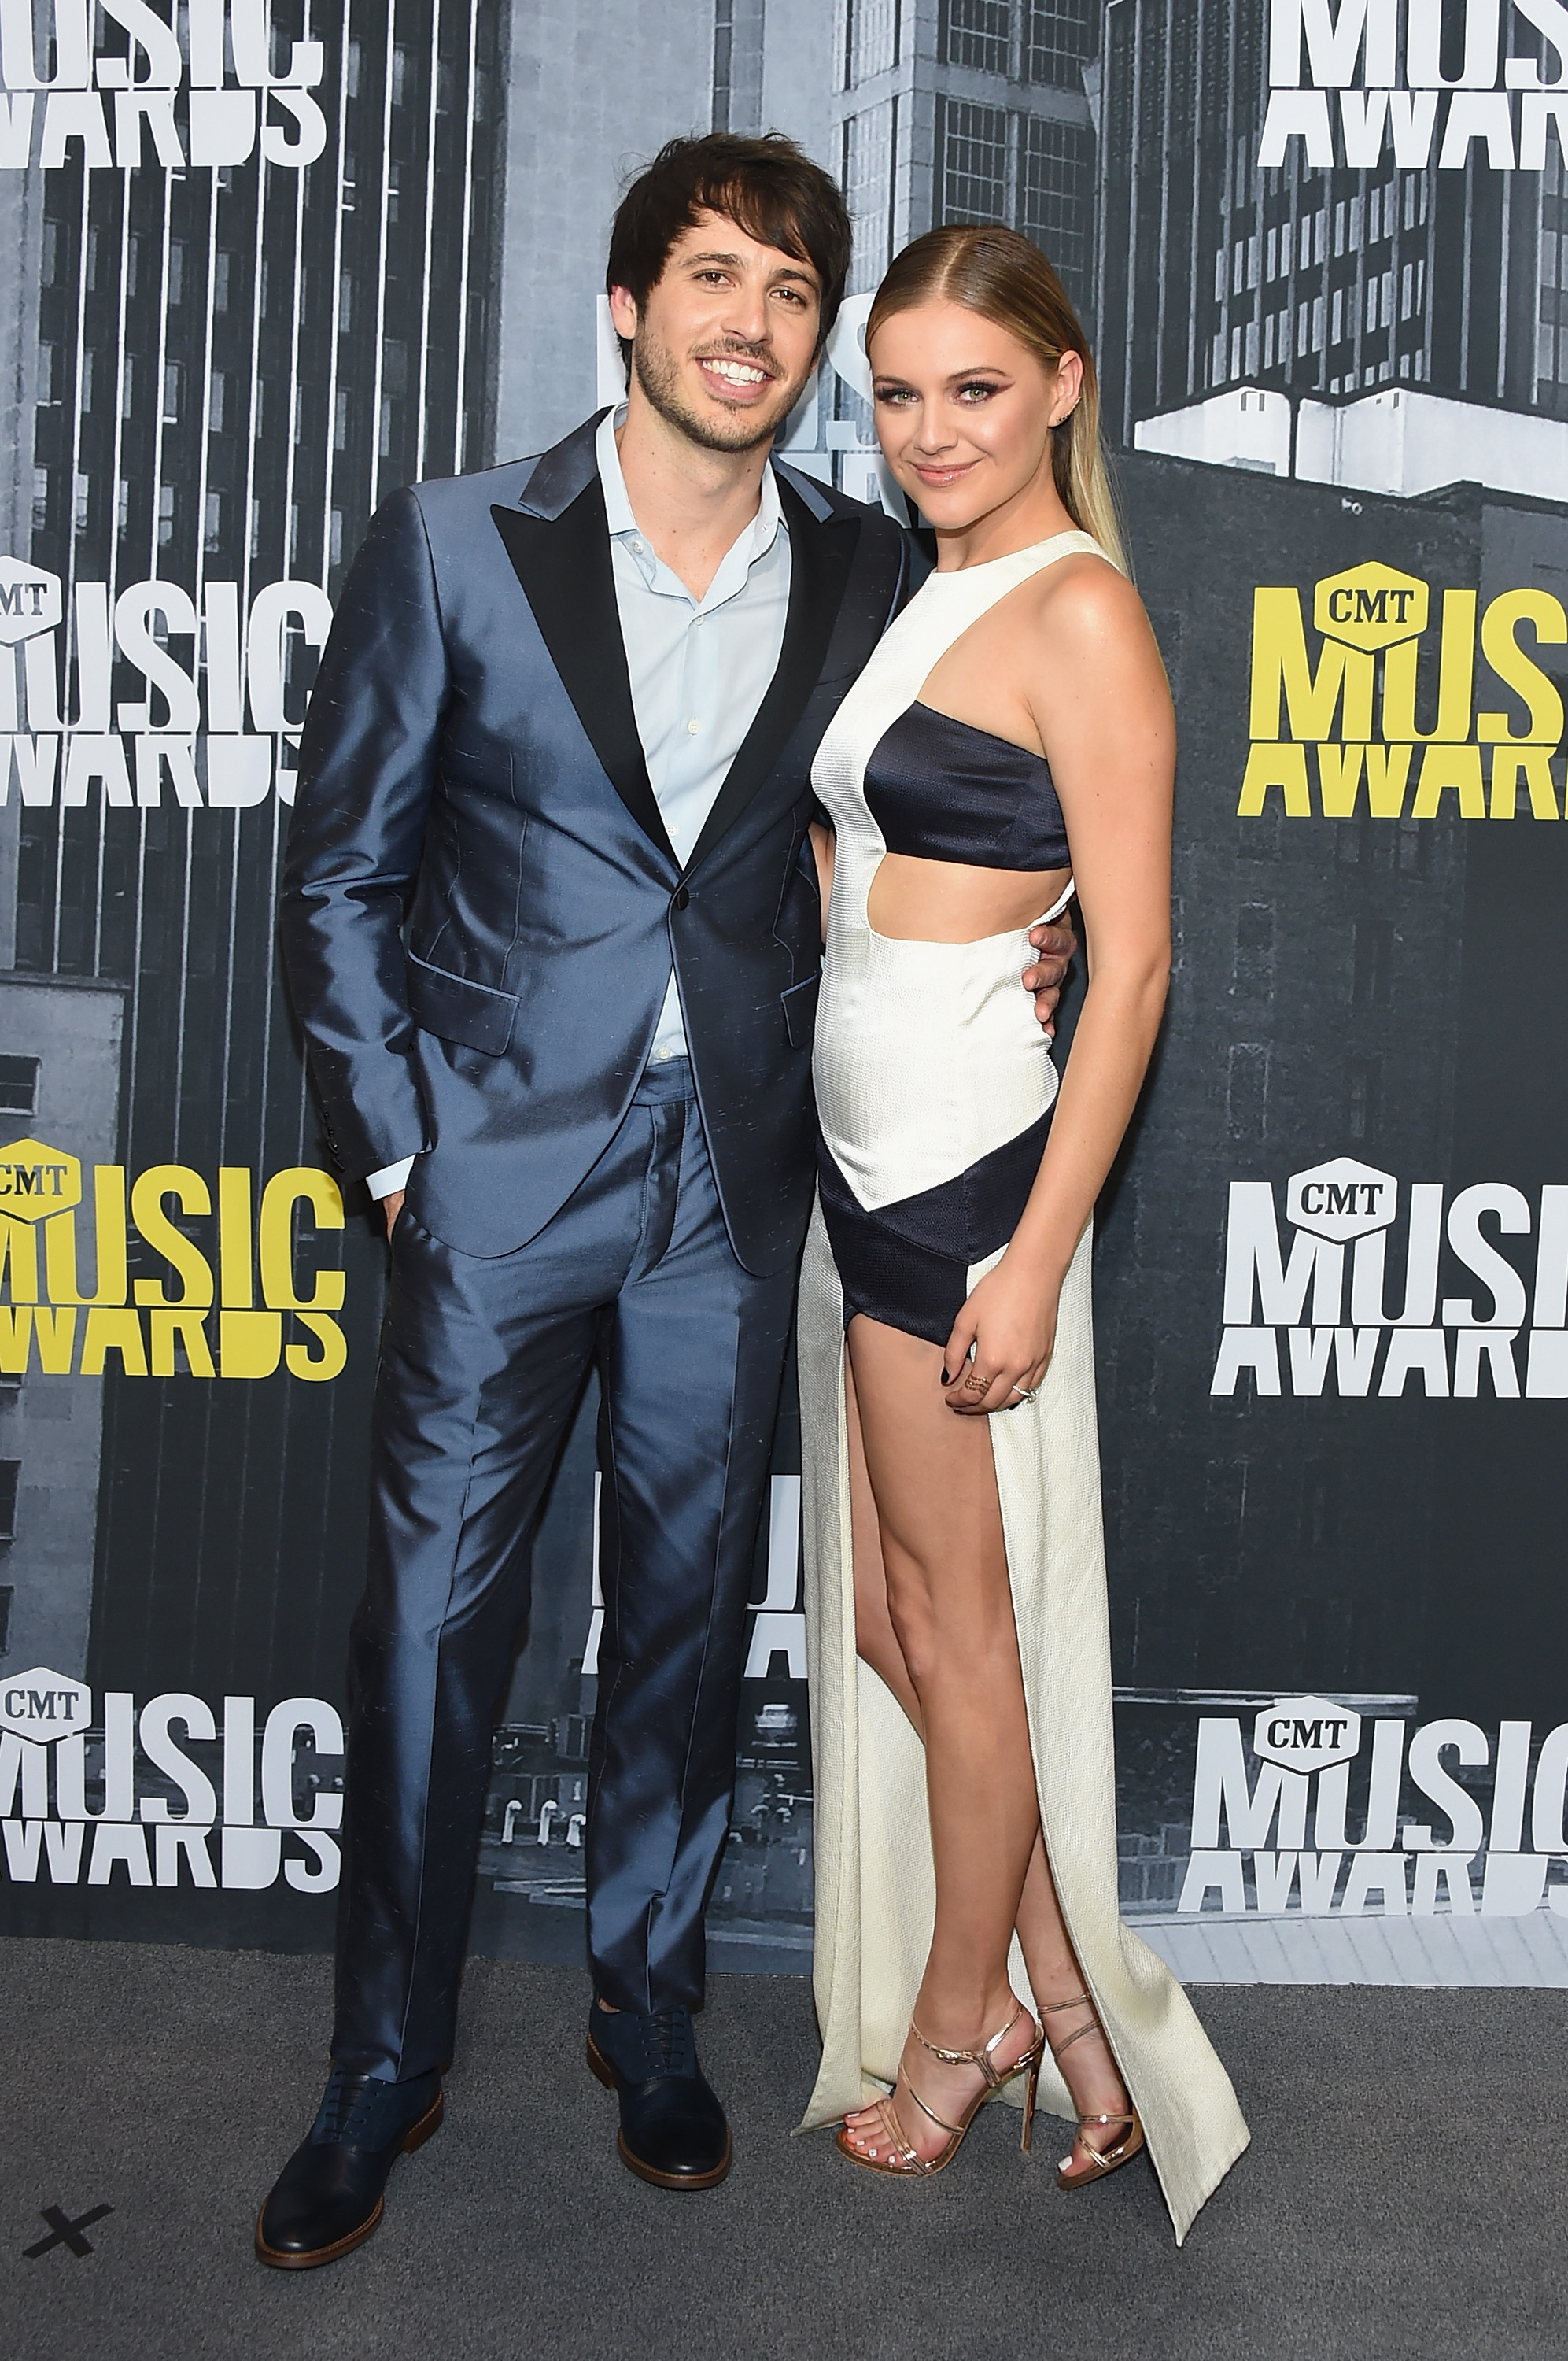 NASHVILLE, TN - JUNE 07: Singer-songwriters Morgan Evans and Kelsea Ballerini attend the 2017 CMT Music Awards at the Music City Center on June 7, 2017 in Nashville, Tennessee. (Photo by Michael Loccisano/Getty Images For CMT)